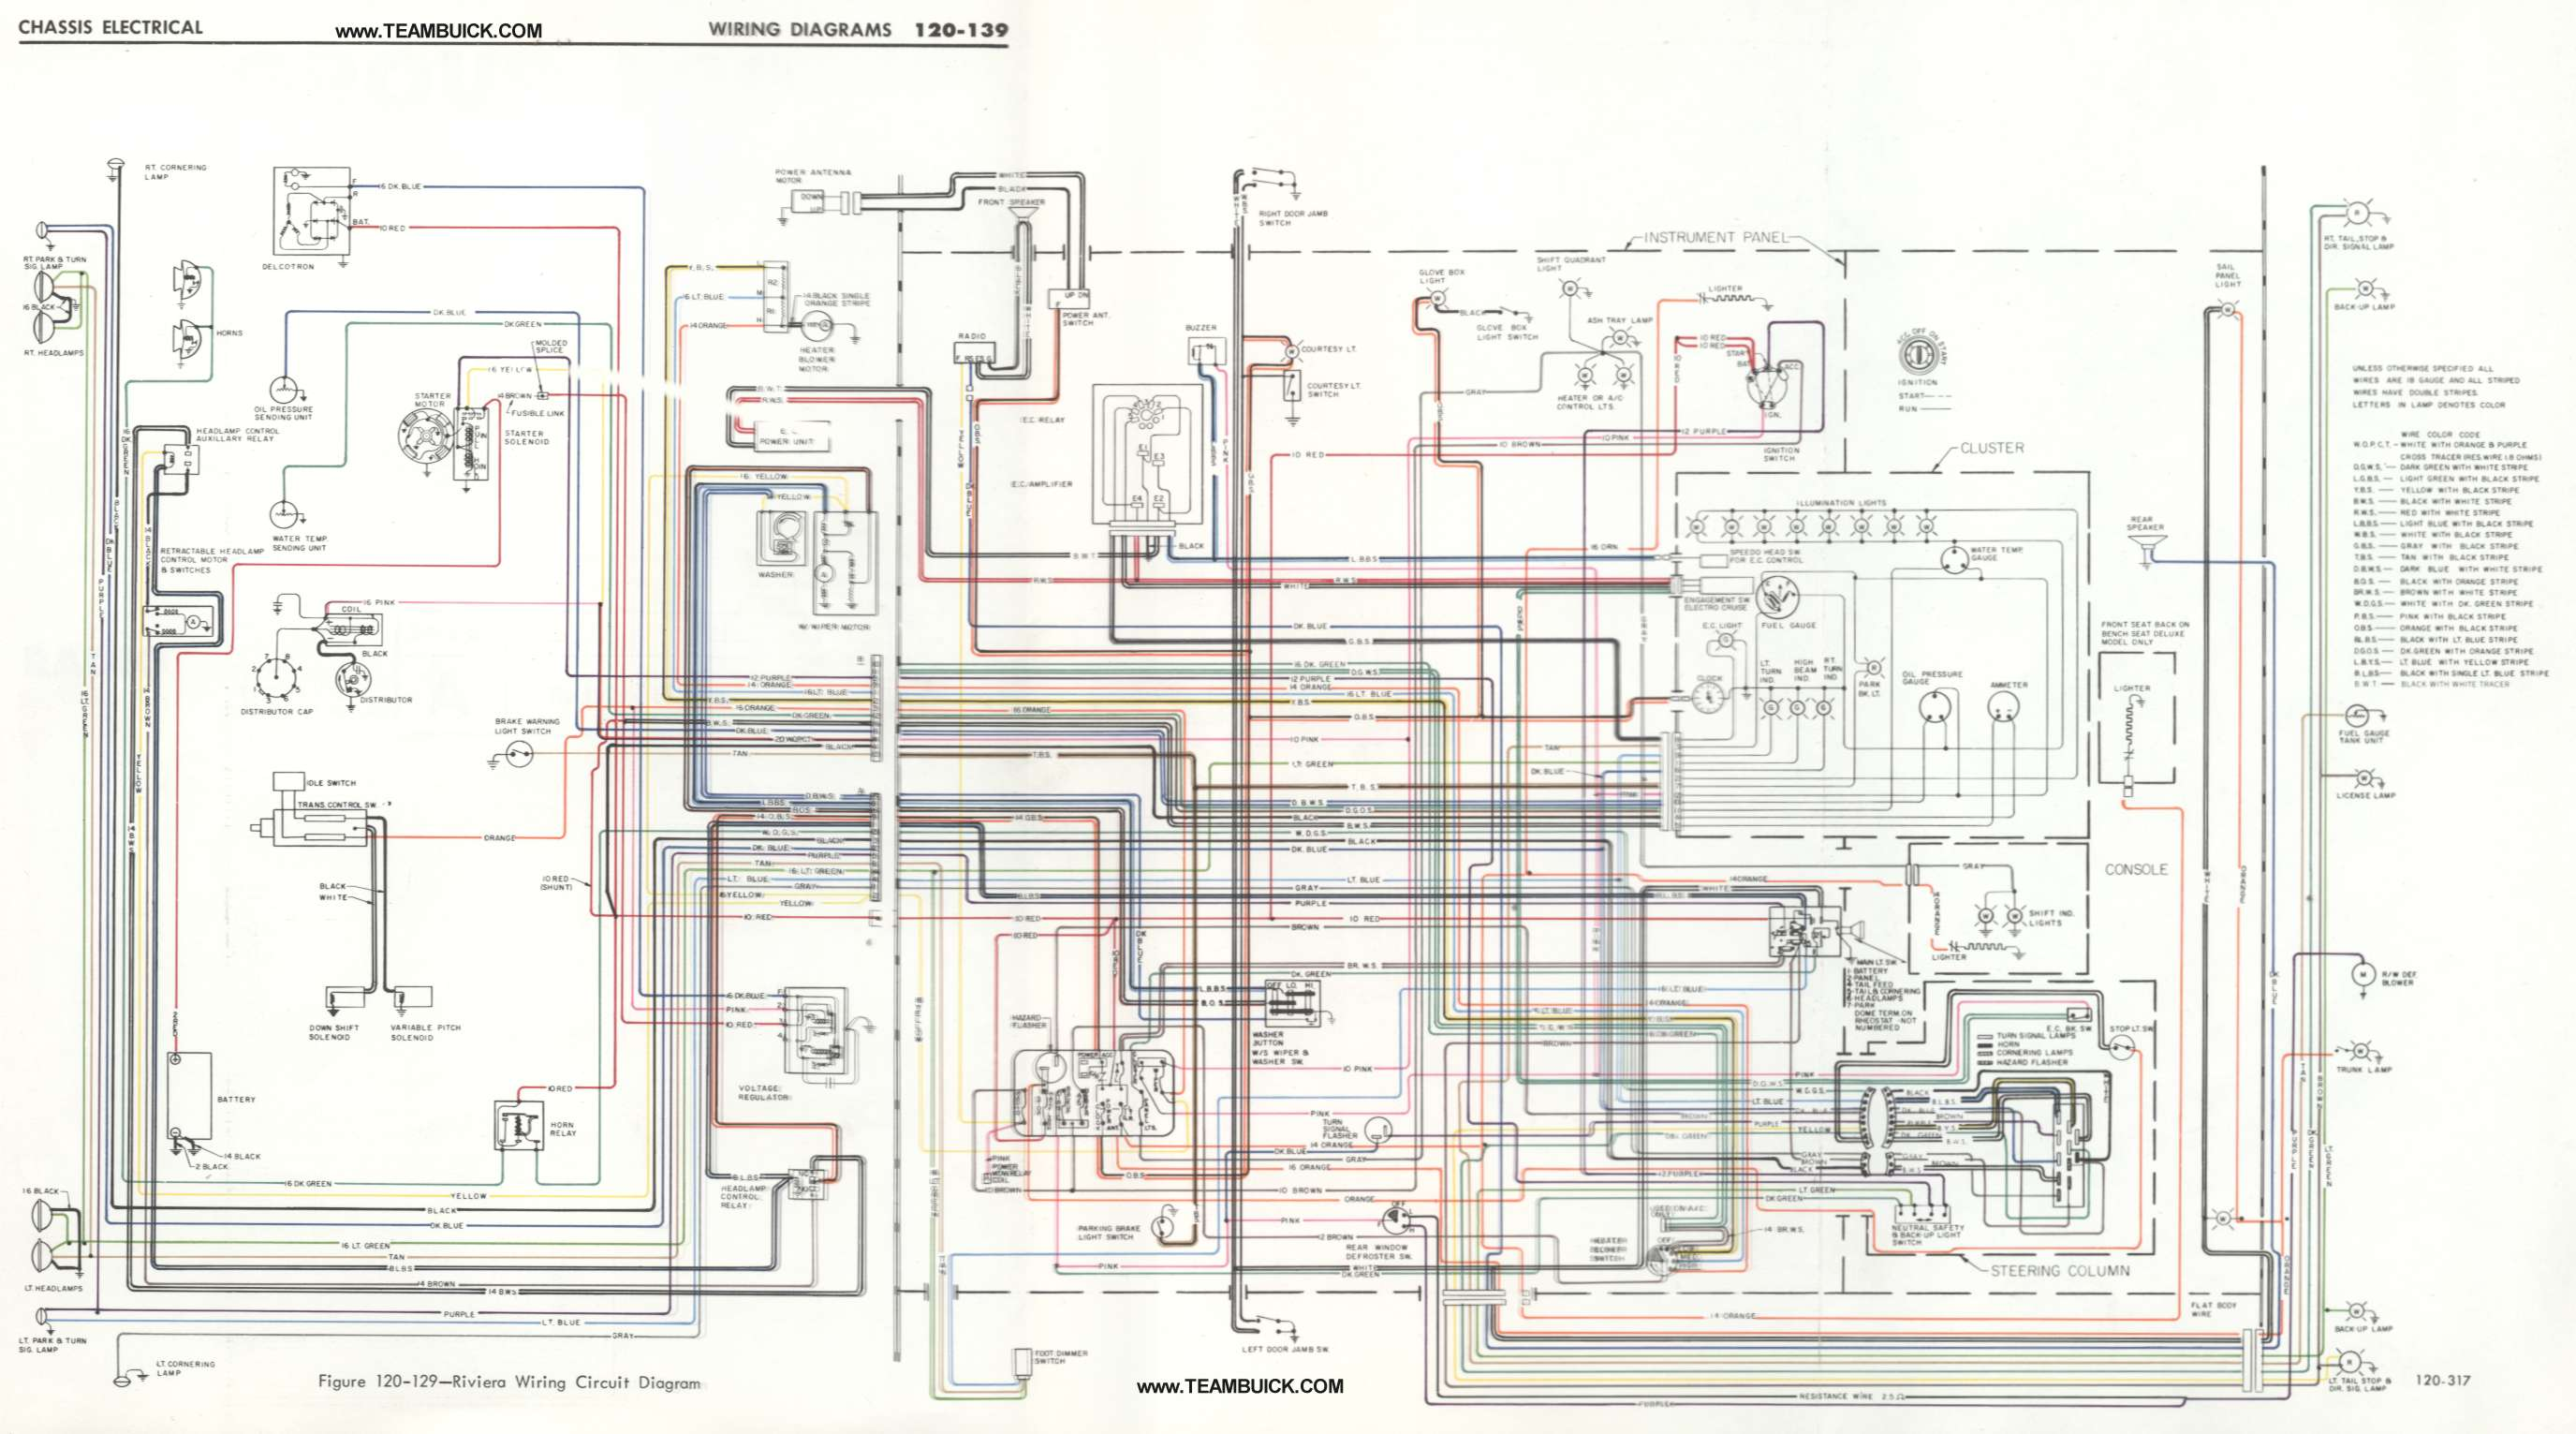 1970 Buick Skylark Wiring Diagram Services Diagrams For 1968 Amc 1967 Riviera Rh Teambuick Com Online